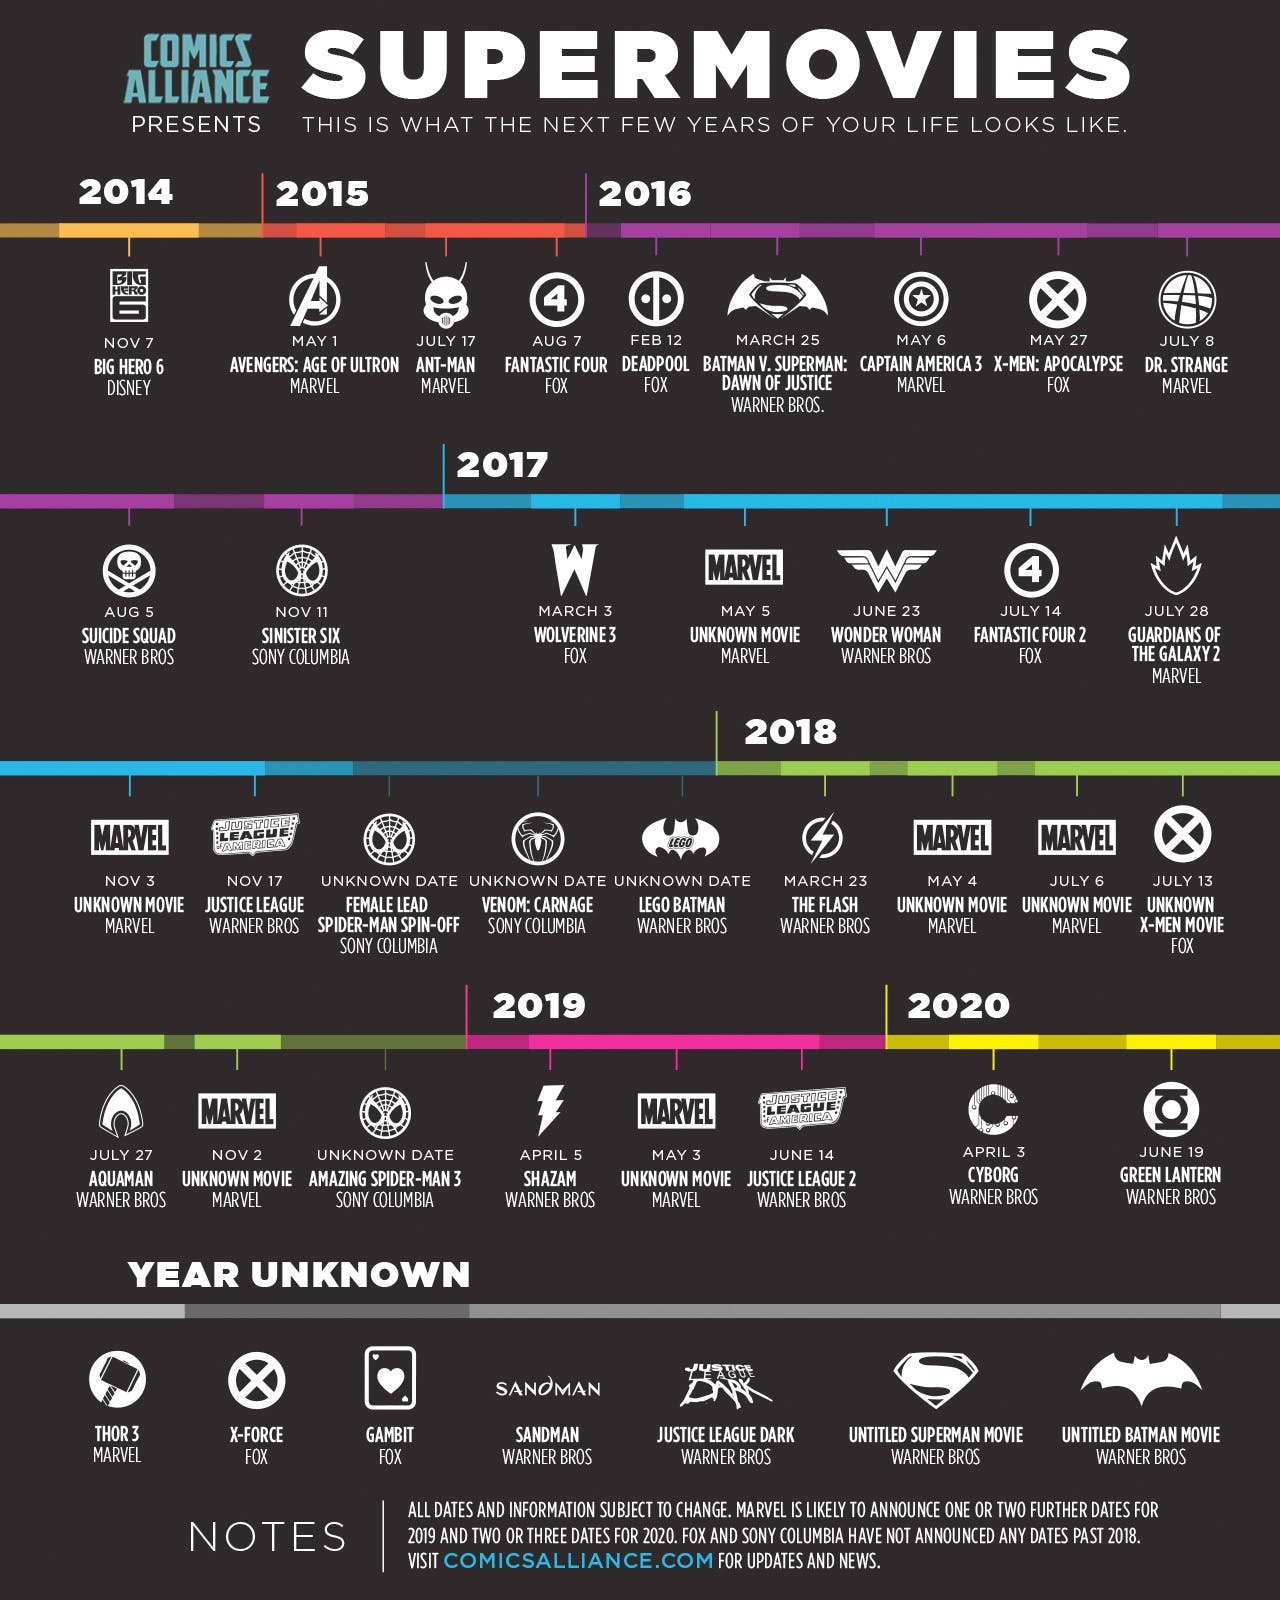 An infographic of superhero movies projected into the next six years.